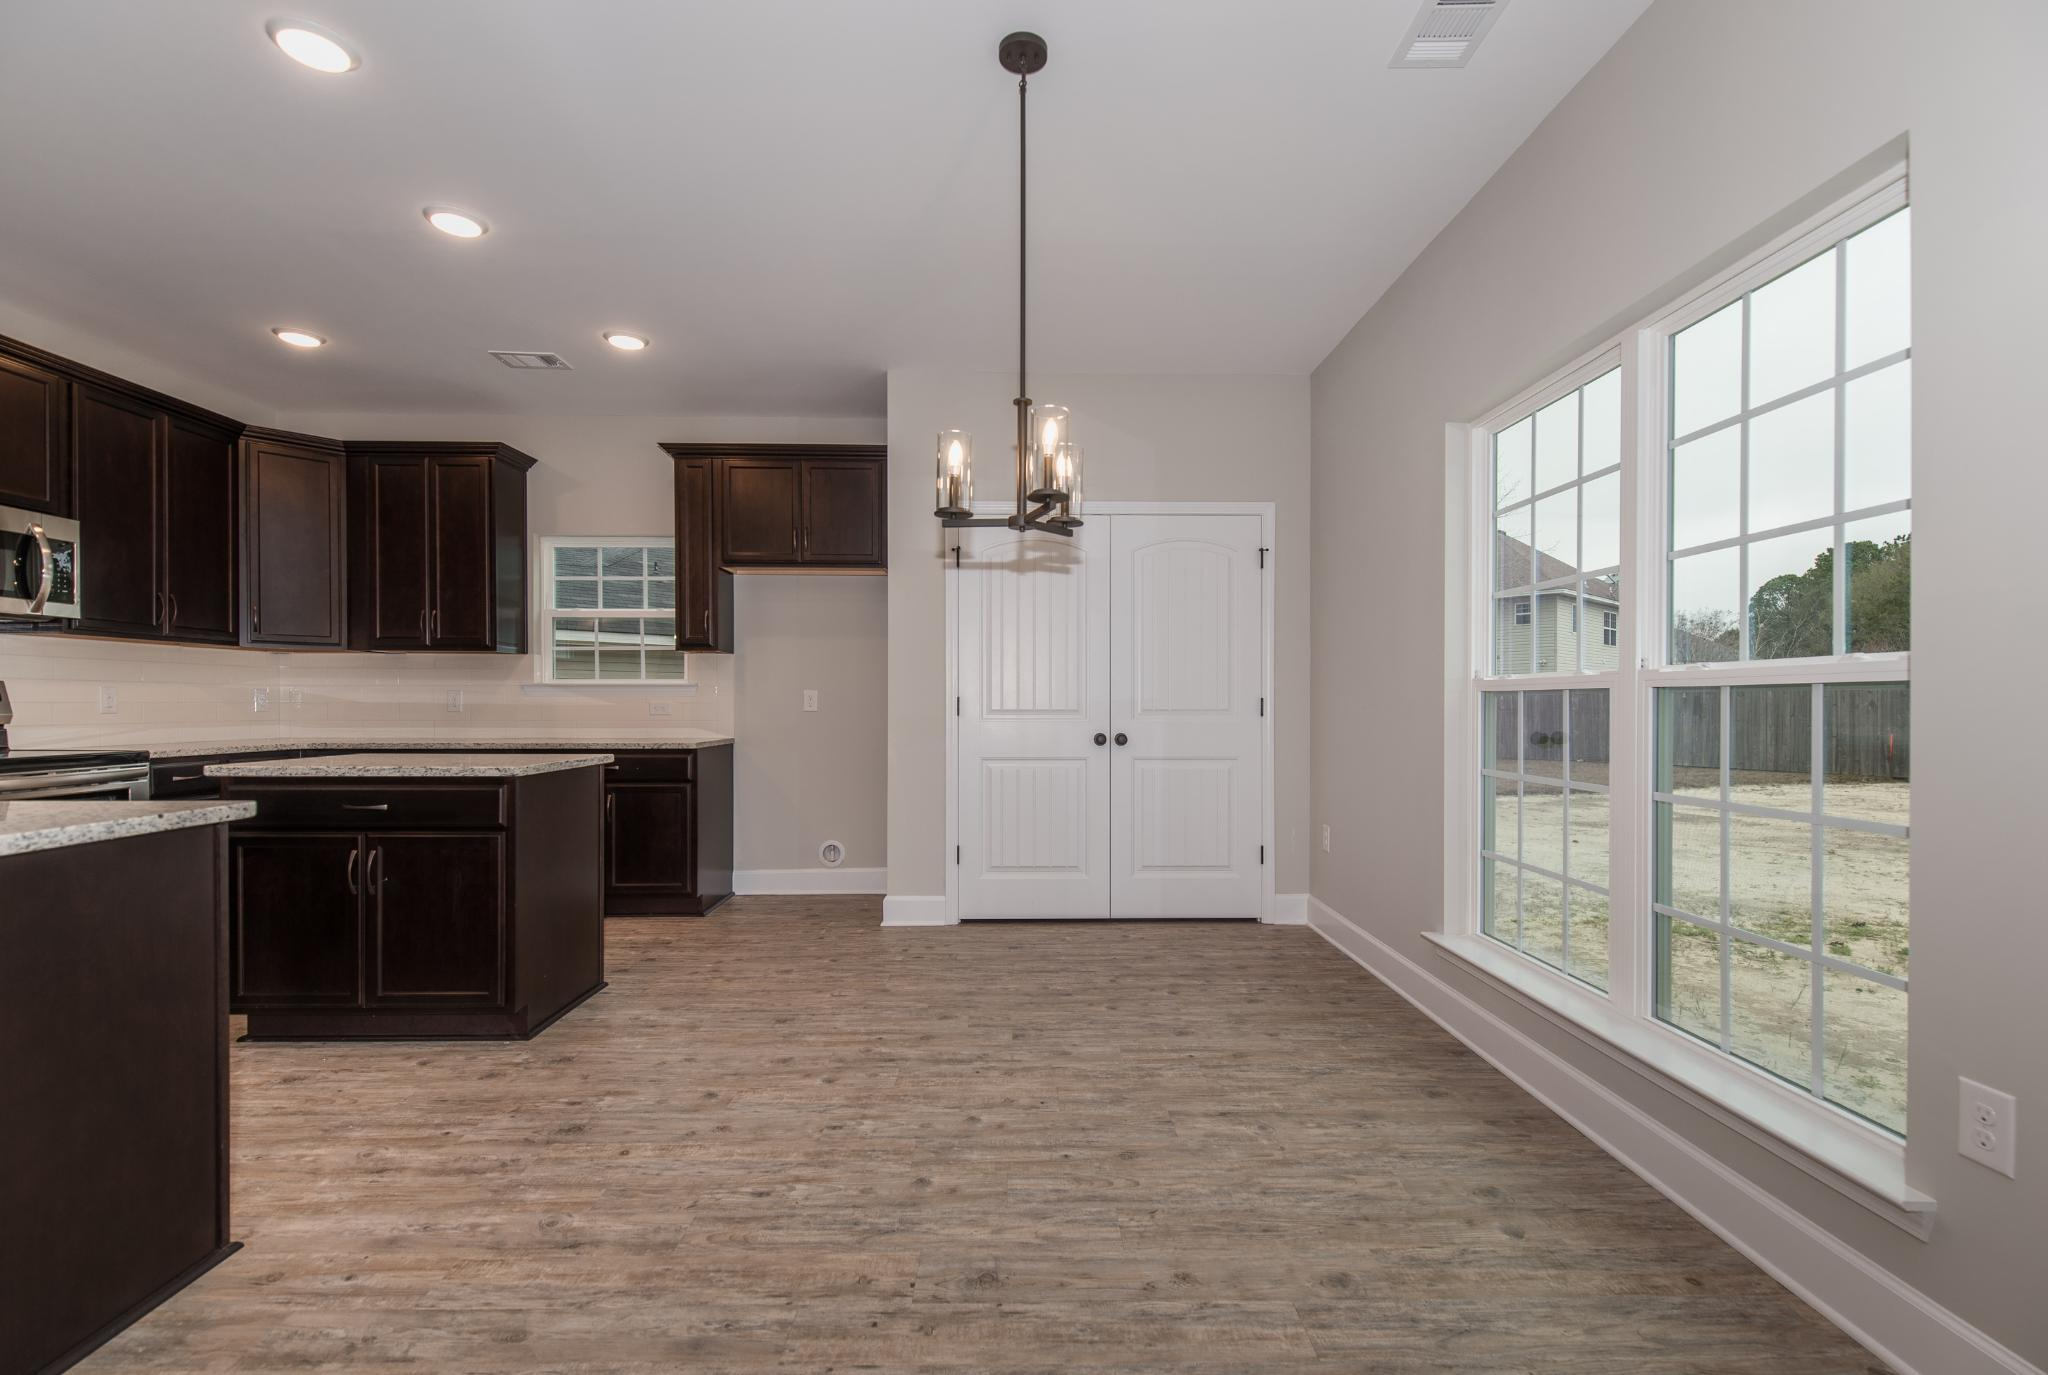 Kitchen featured in the St. Helena By Ernest Homes in Savannah, GA